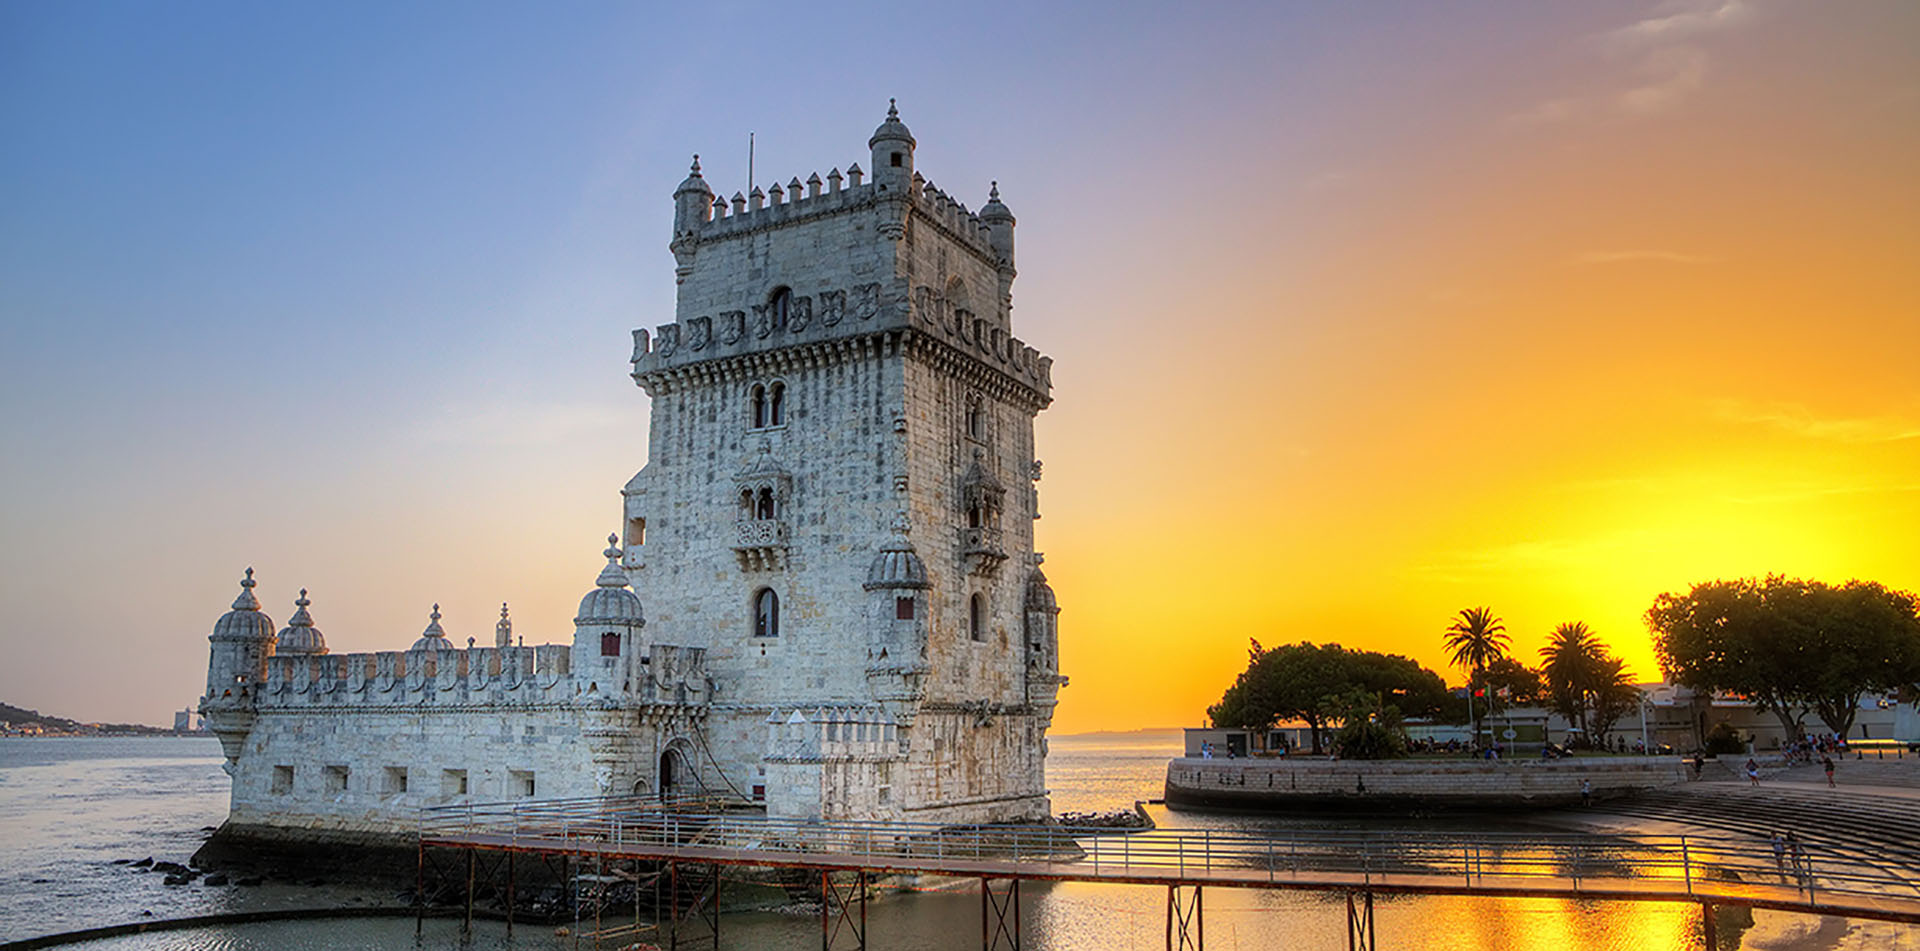 Castle Tower in Portugal